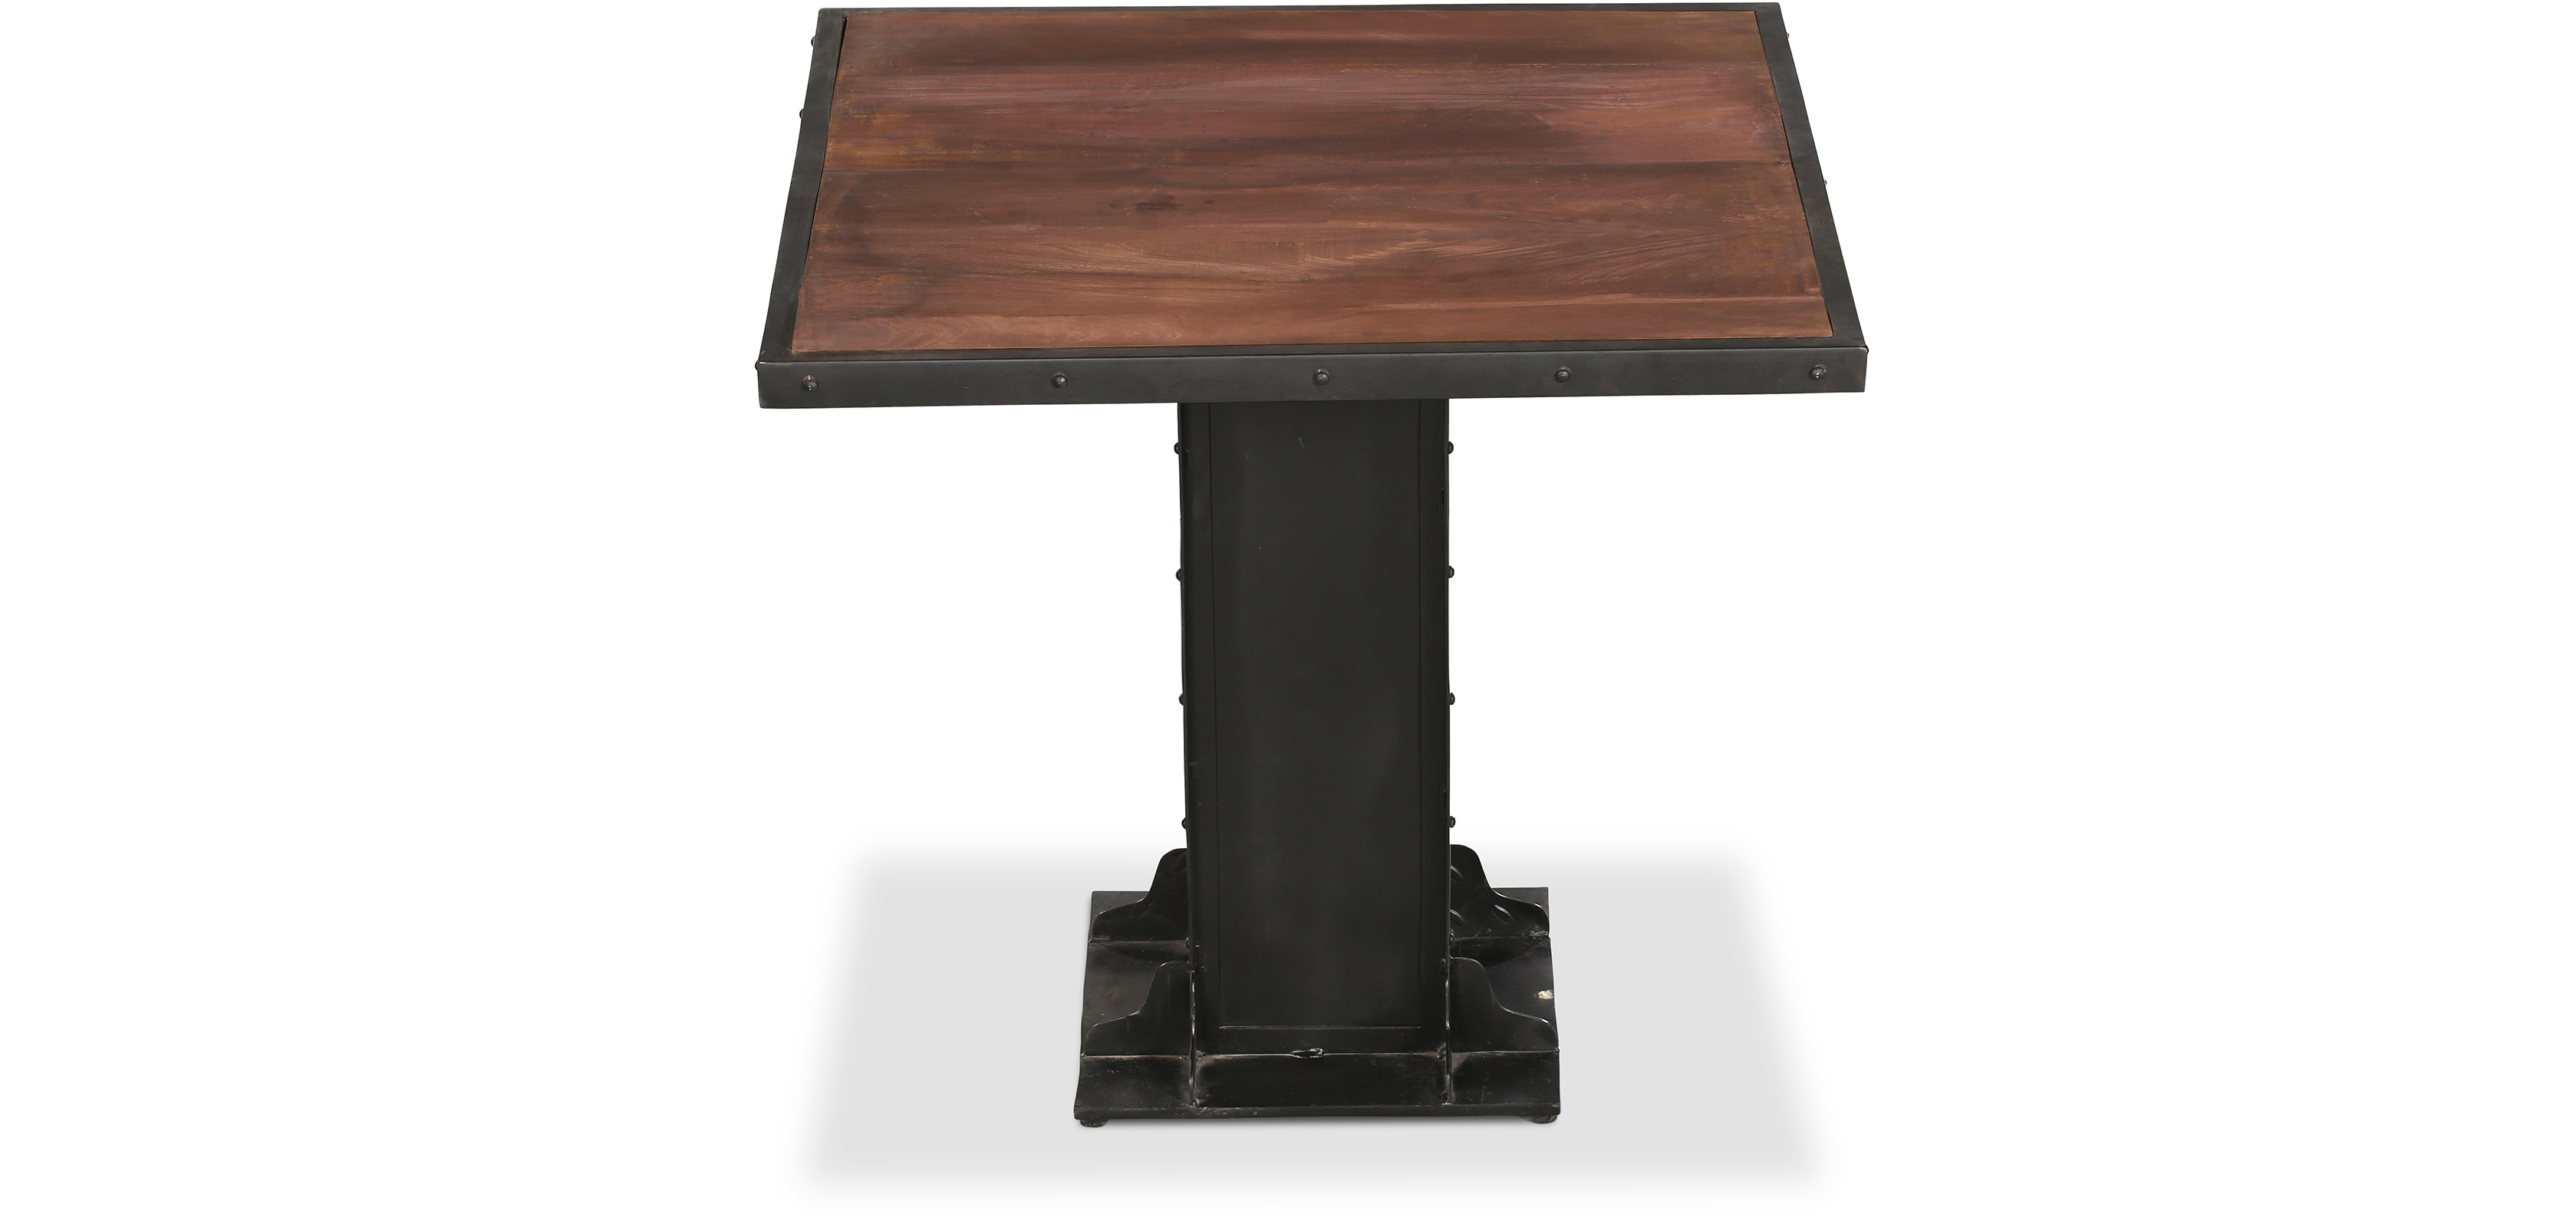 Table de salle manger carr e en m tal style industriel for Table a manger industriel pas cher